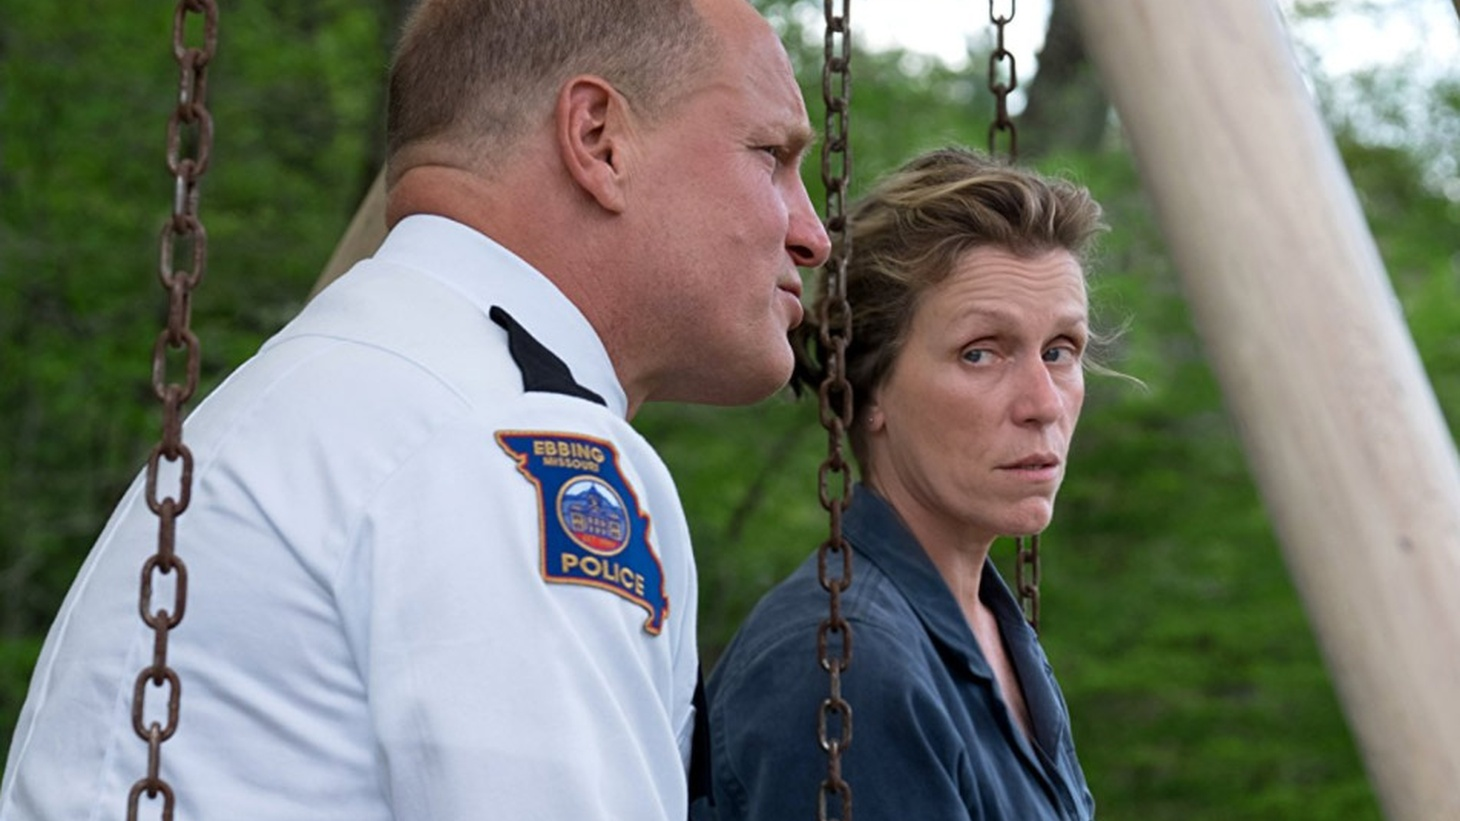 Three Billboards Outside Ebbing, Missouri is darkly comic, blazingly profane, flat-out hilarious and often violent, not to mention flippant, tender, poetic and profound.